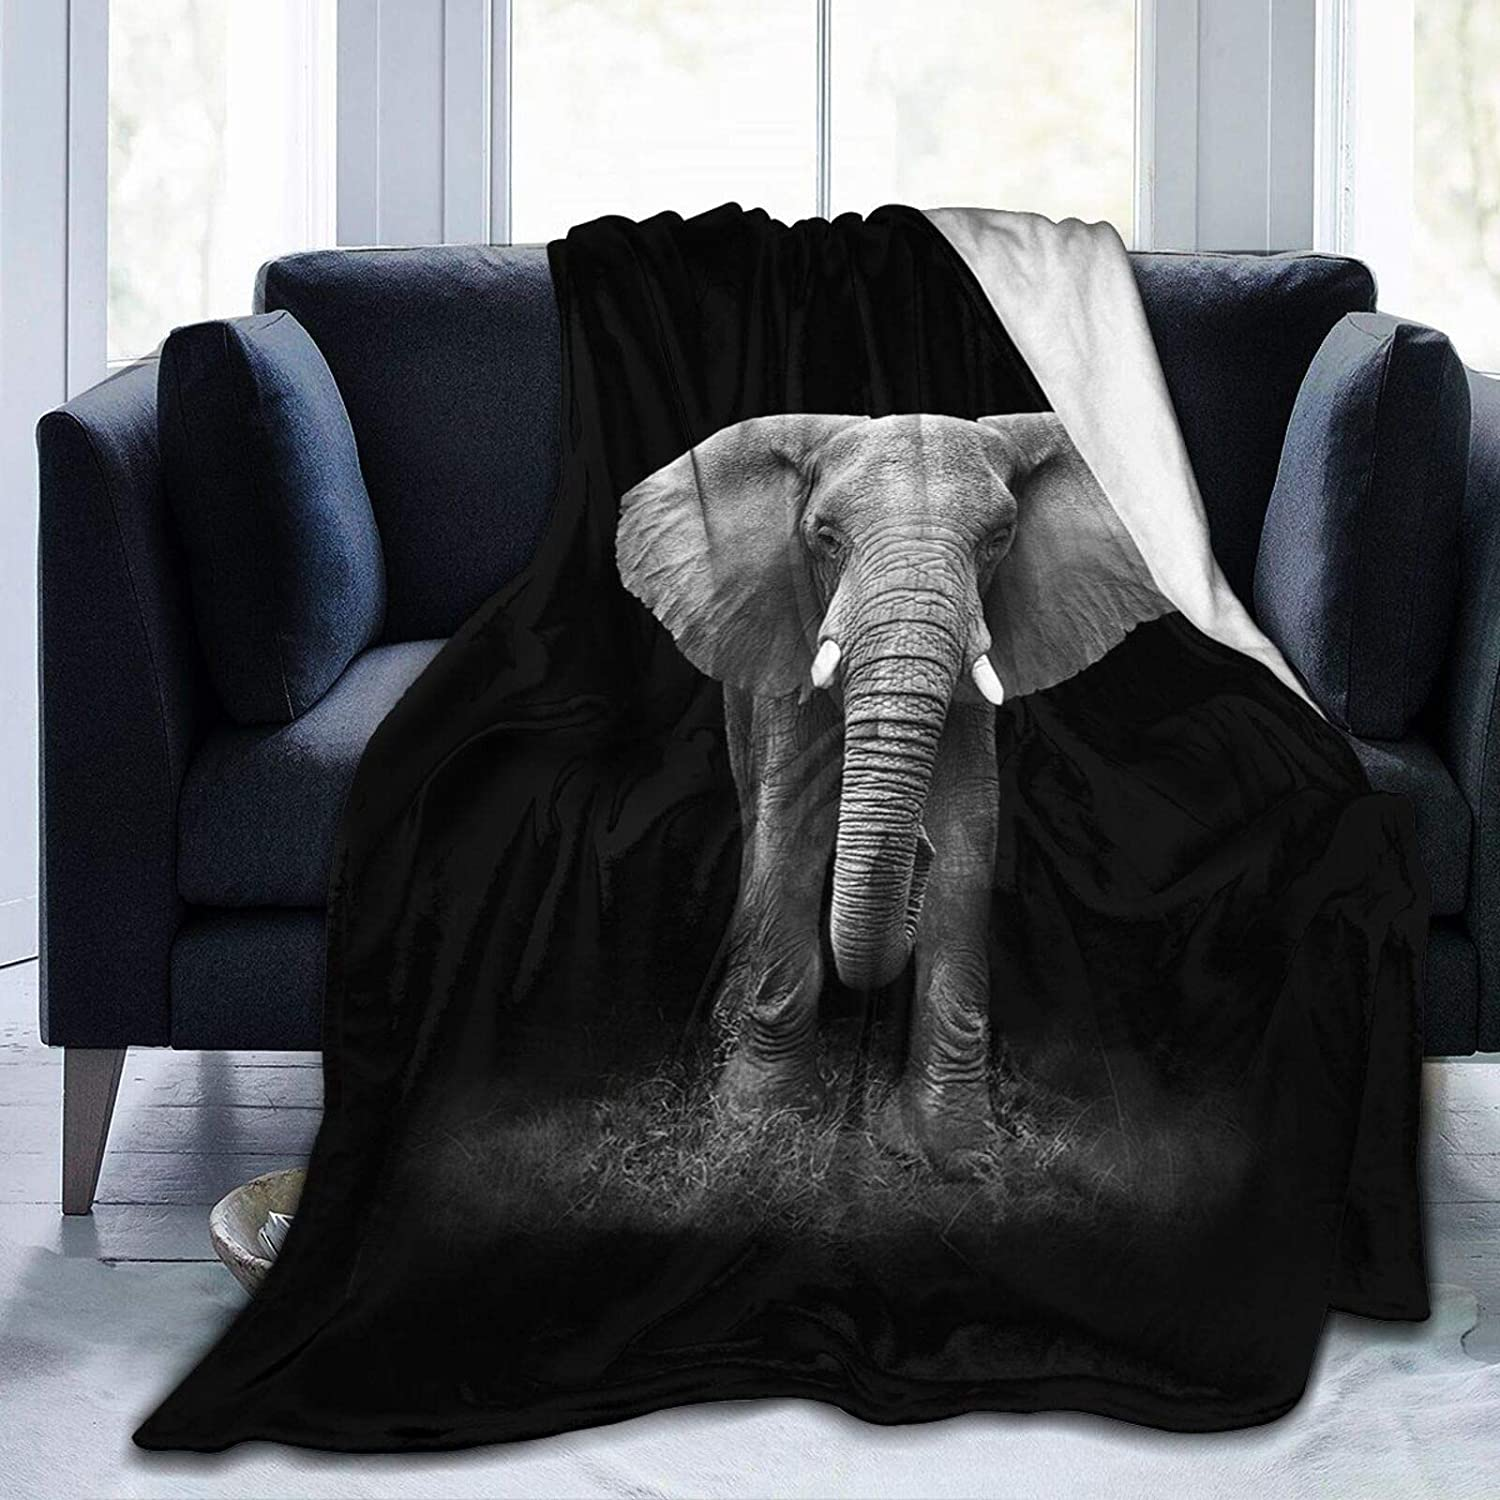 HANKCLES Elephant Throw Blanket Animal Bedding Blanket Super Soft Cozy Fleece Plush Reversible Blanket Size for Baby Adults Couch Sofa 40x50 Inch